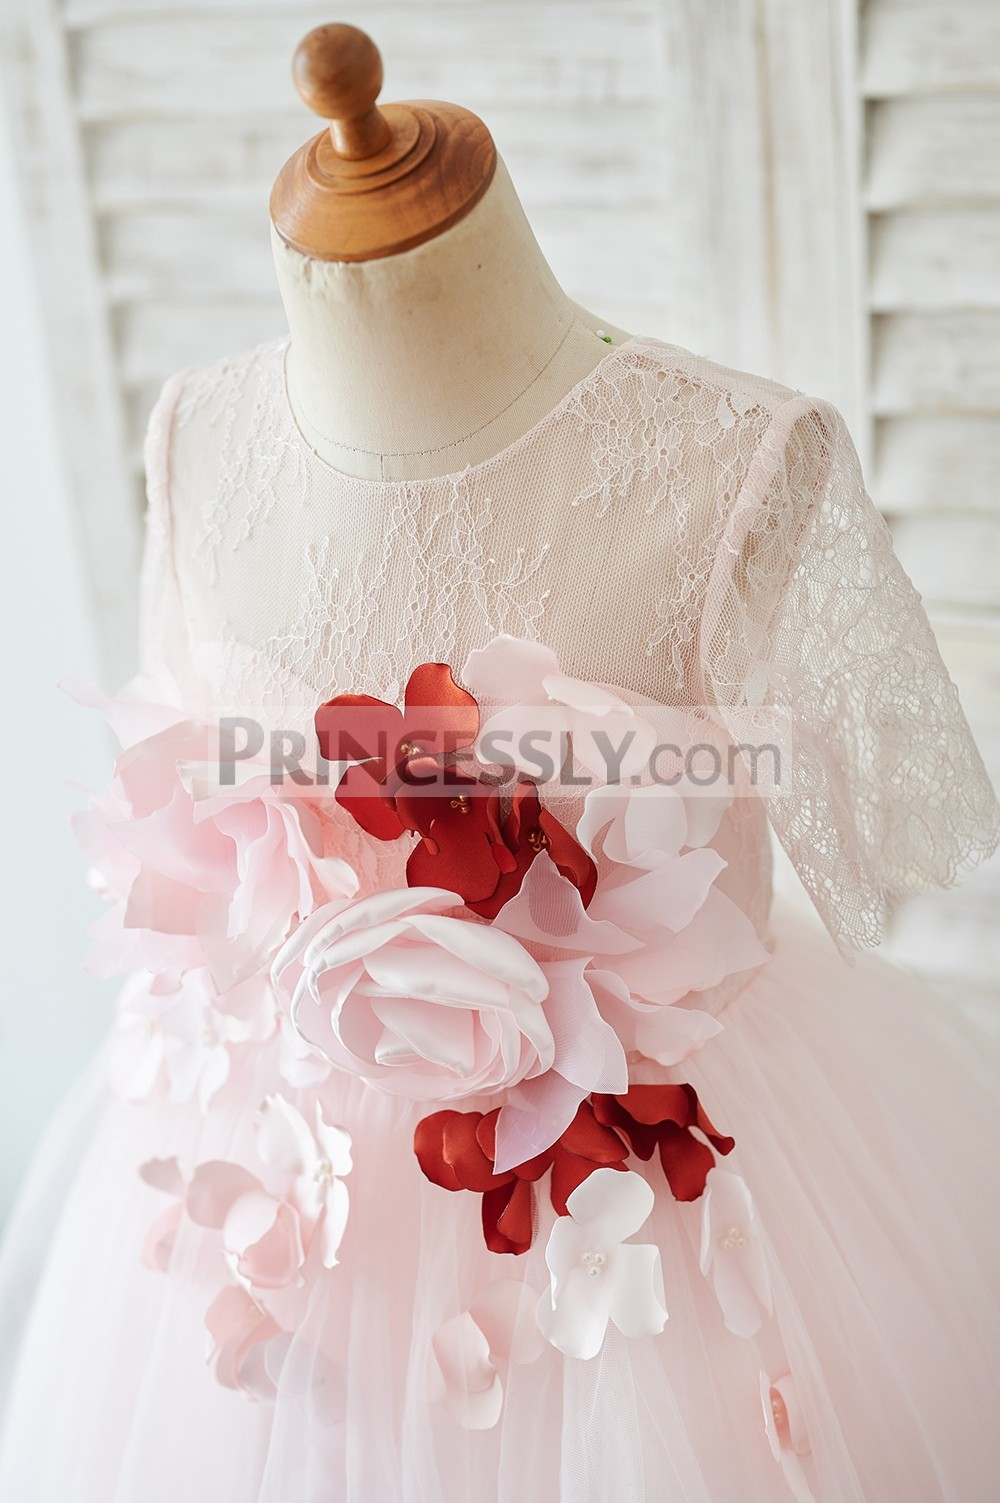 Lace overlay inside sweetheart lining bodice with 3D flowers